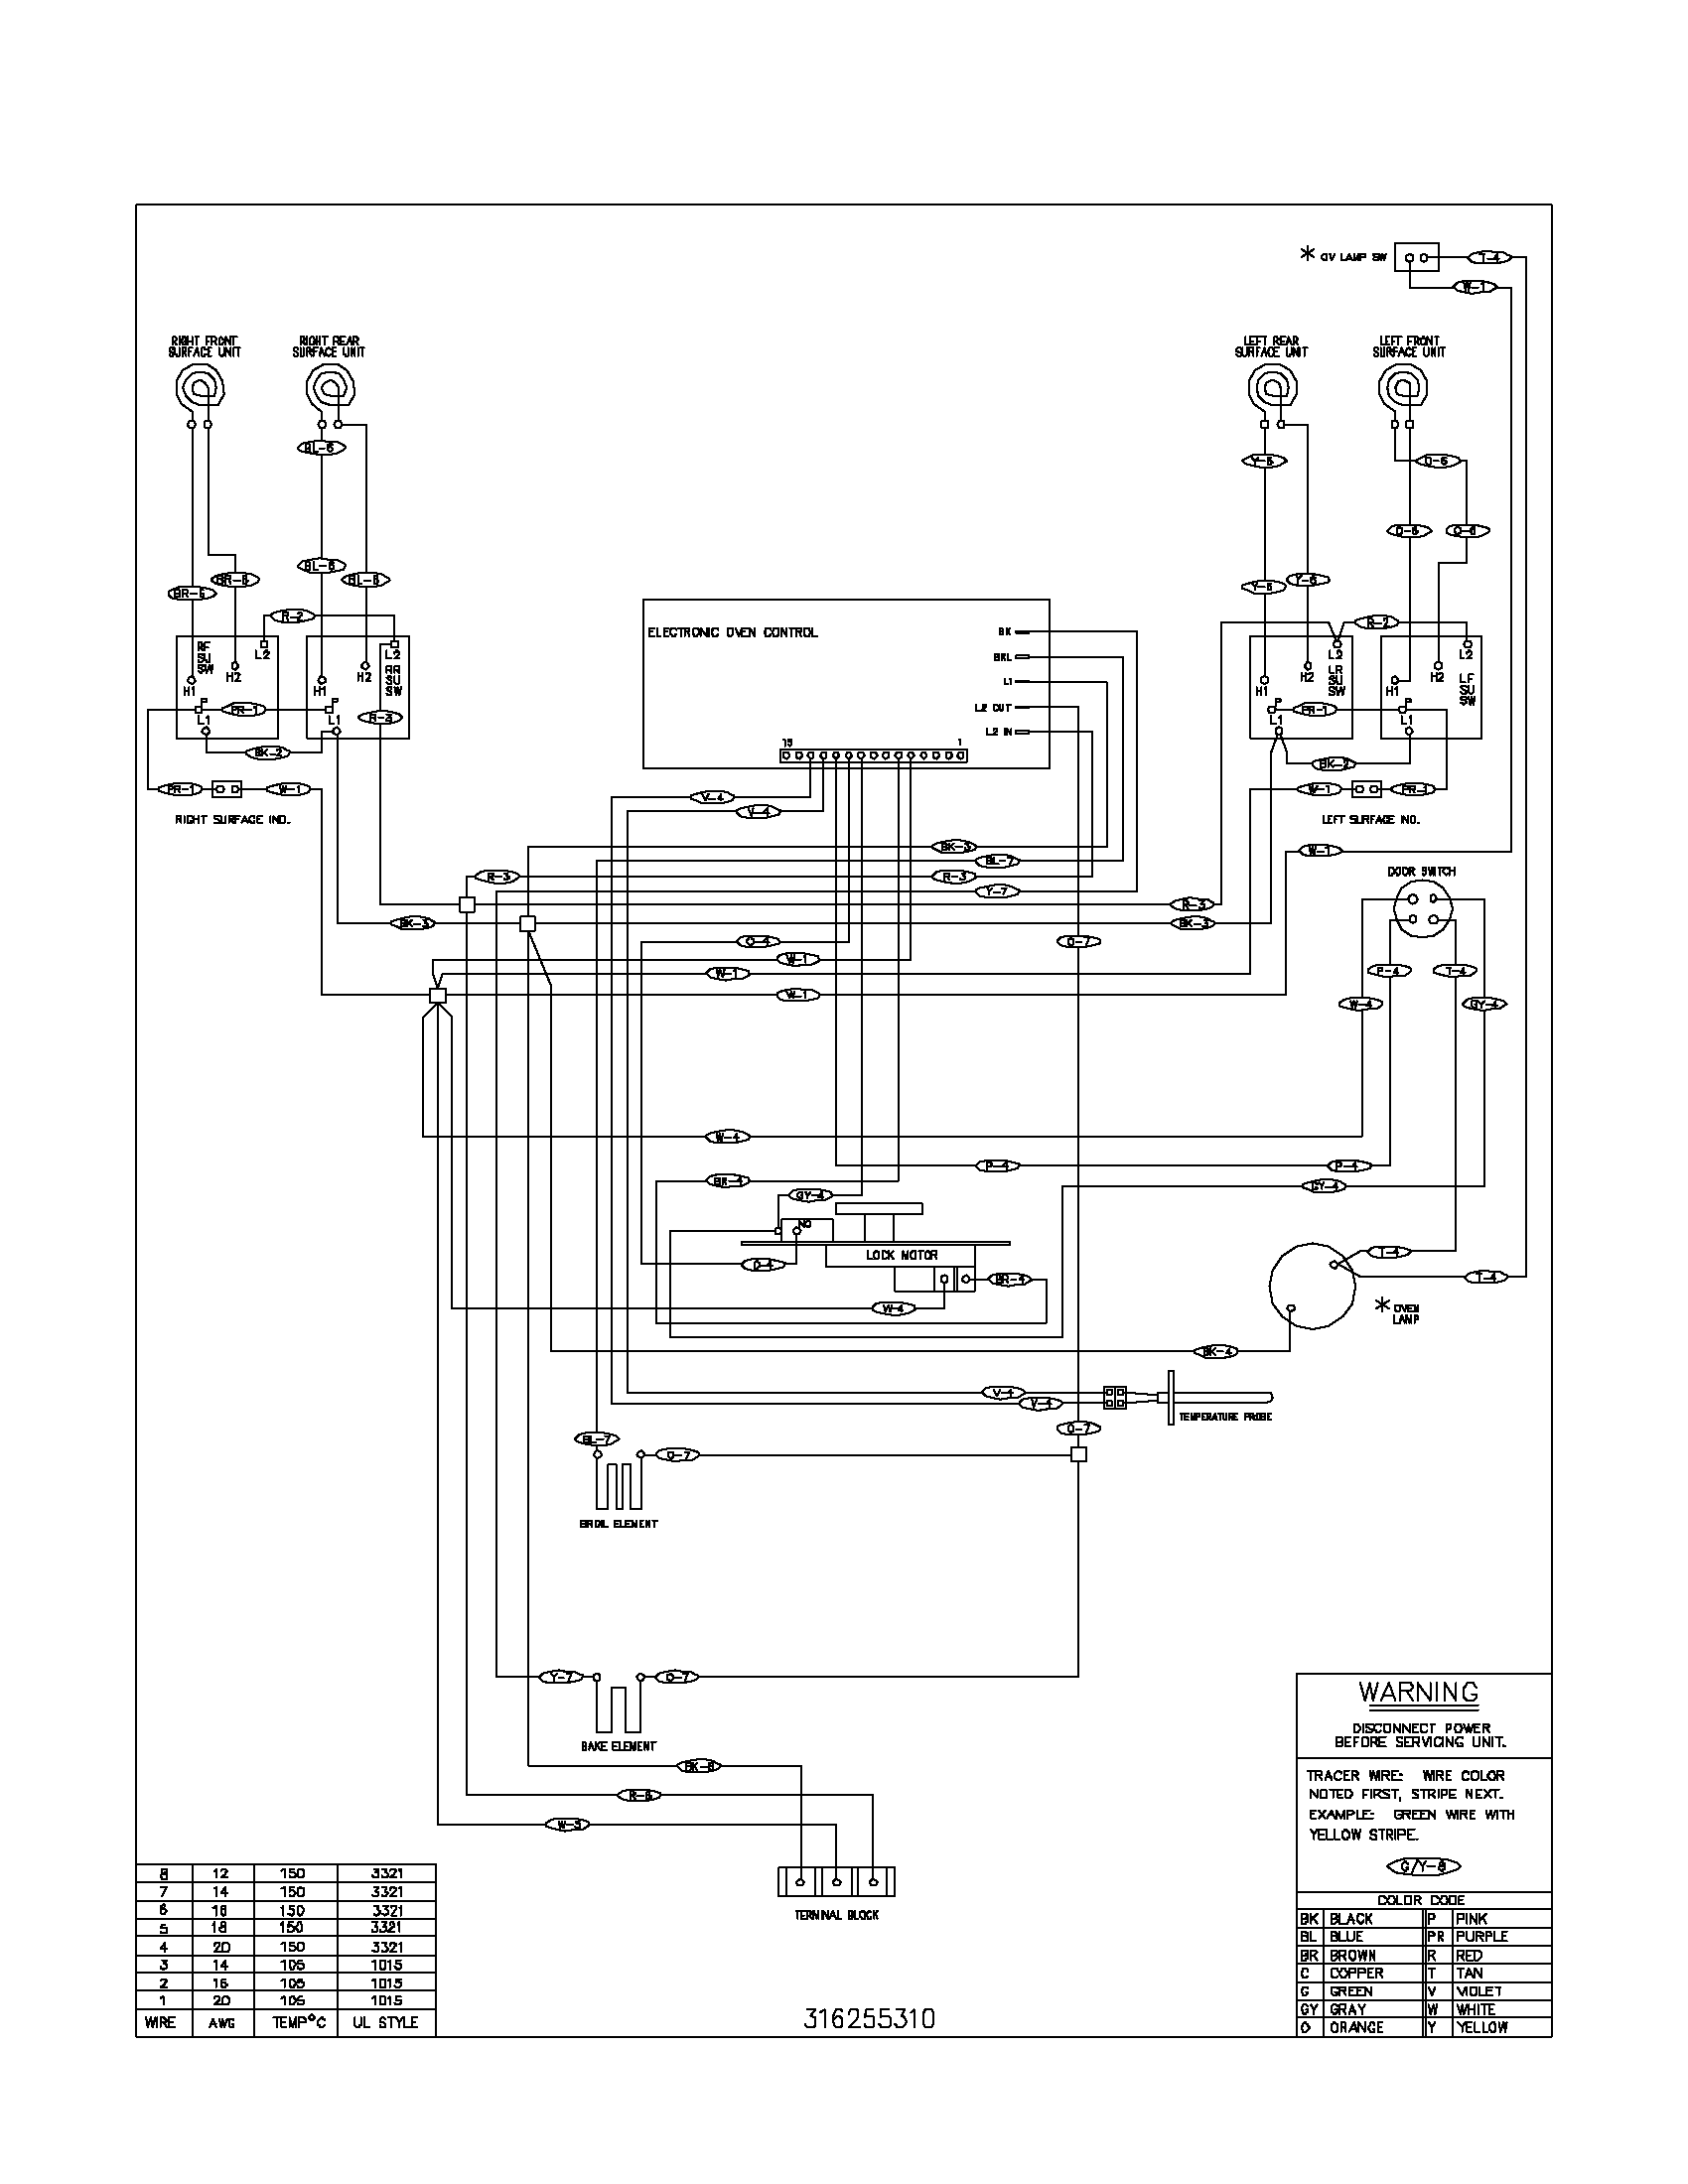 wiring diagram for frigidaire dishwasher the wiring diagram frigidaire fef352asf electric range timer stove clocks and wiring diagram